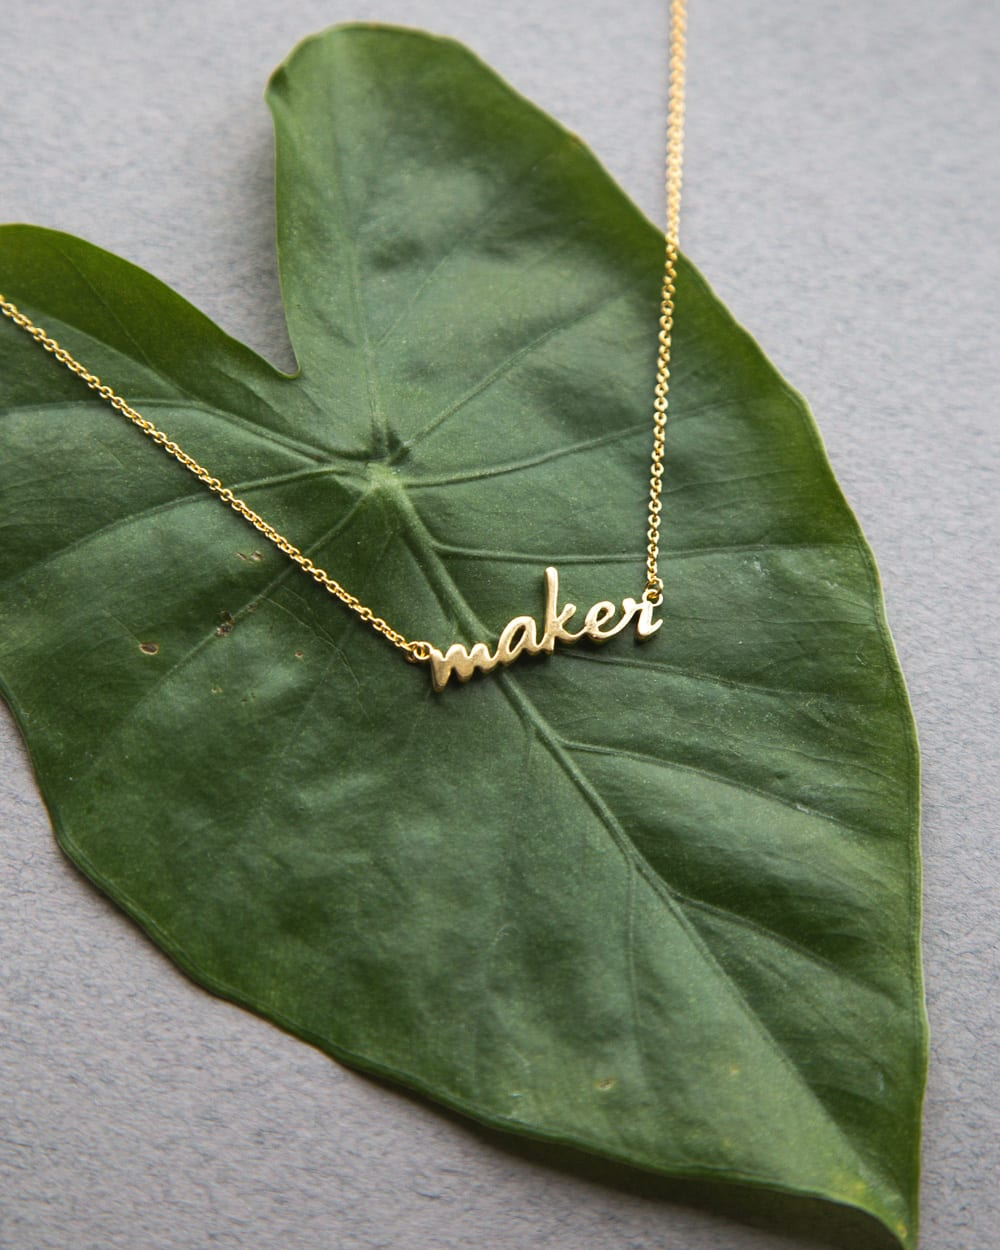 Maker & Sewist necklaces from Closet Case Patterns